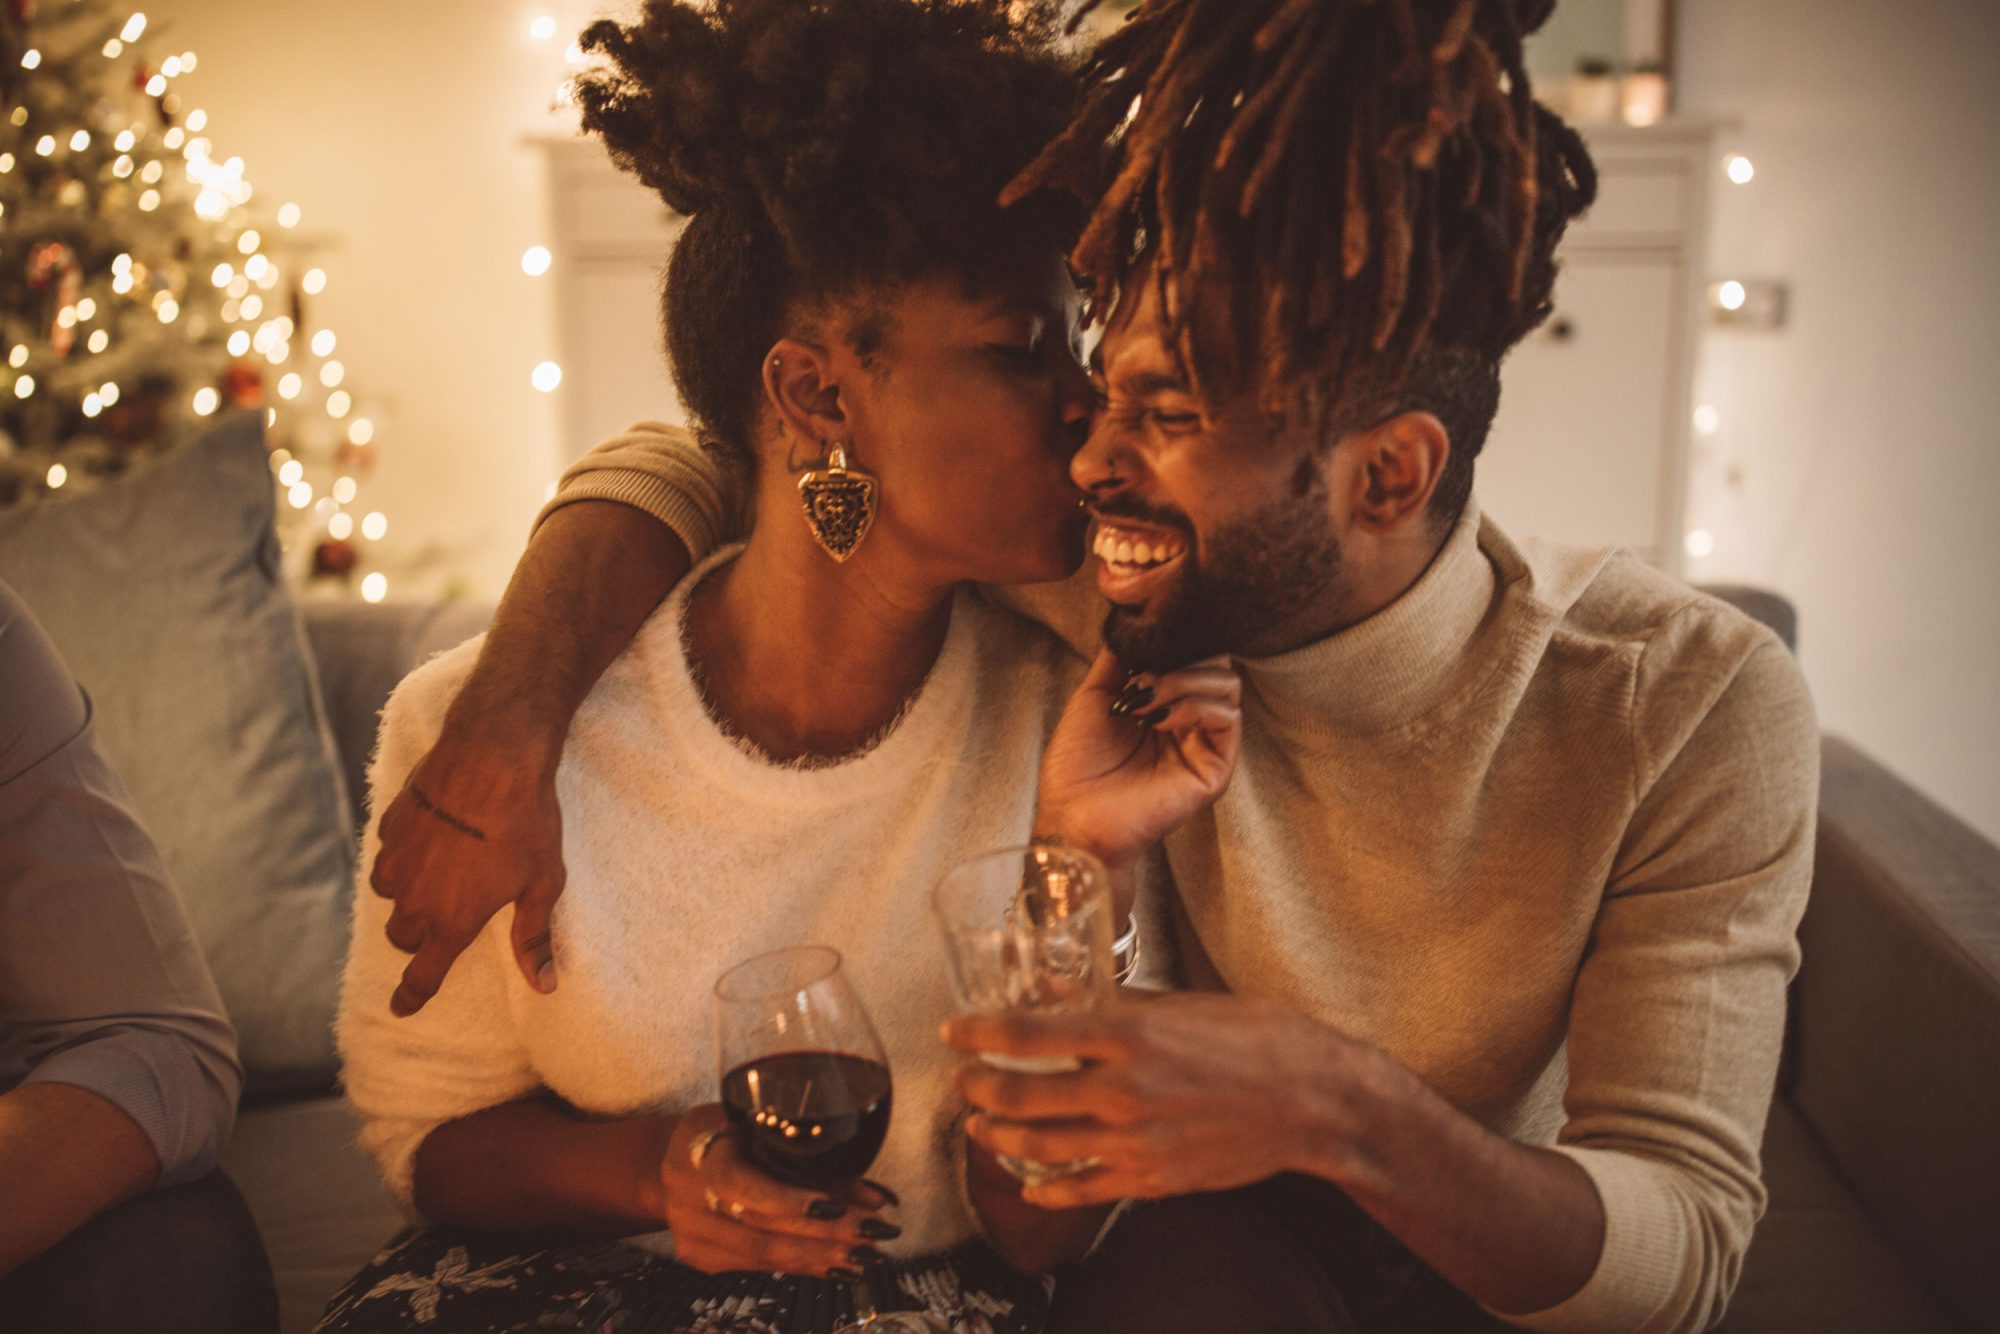 Best Gifts to Give Your Partner Based on Their Love Language/How Long You've Been Dating